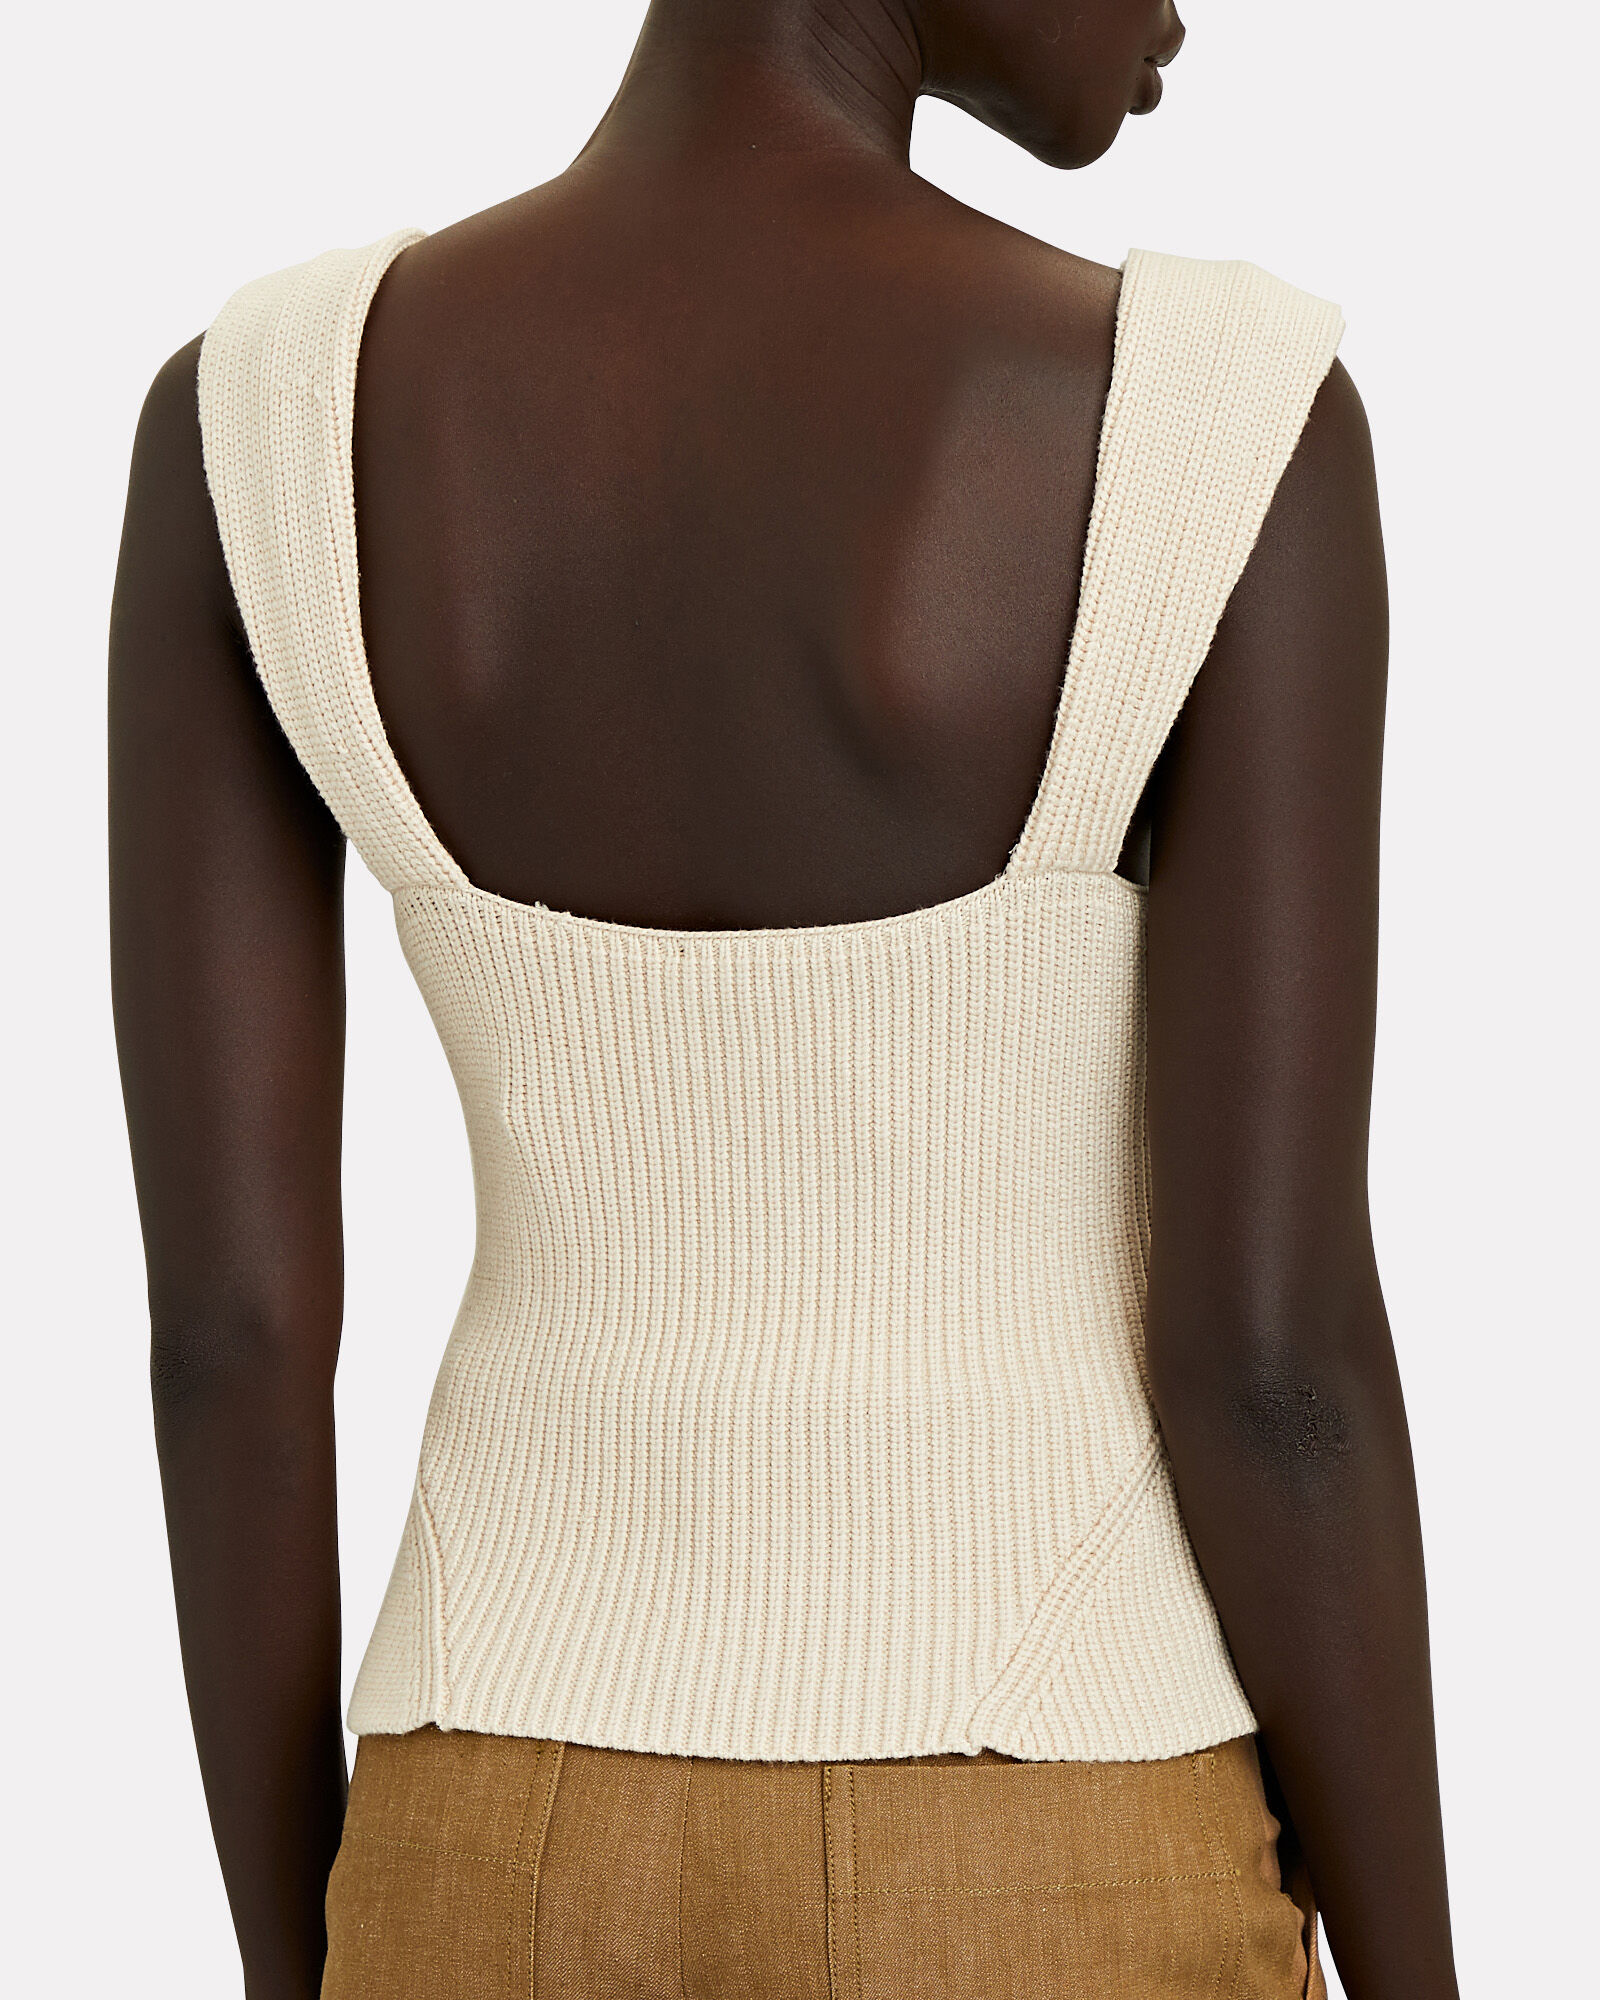 Kira Knit Bustier Tank Top, IVORY, hi-res